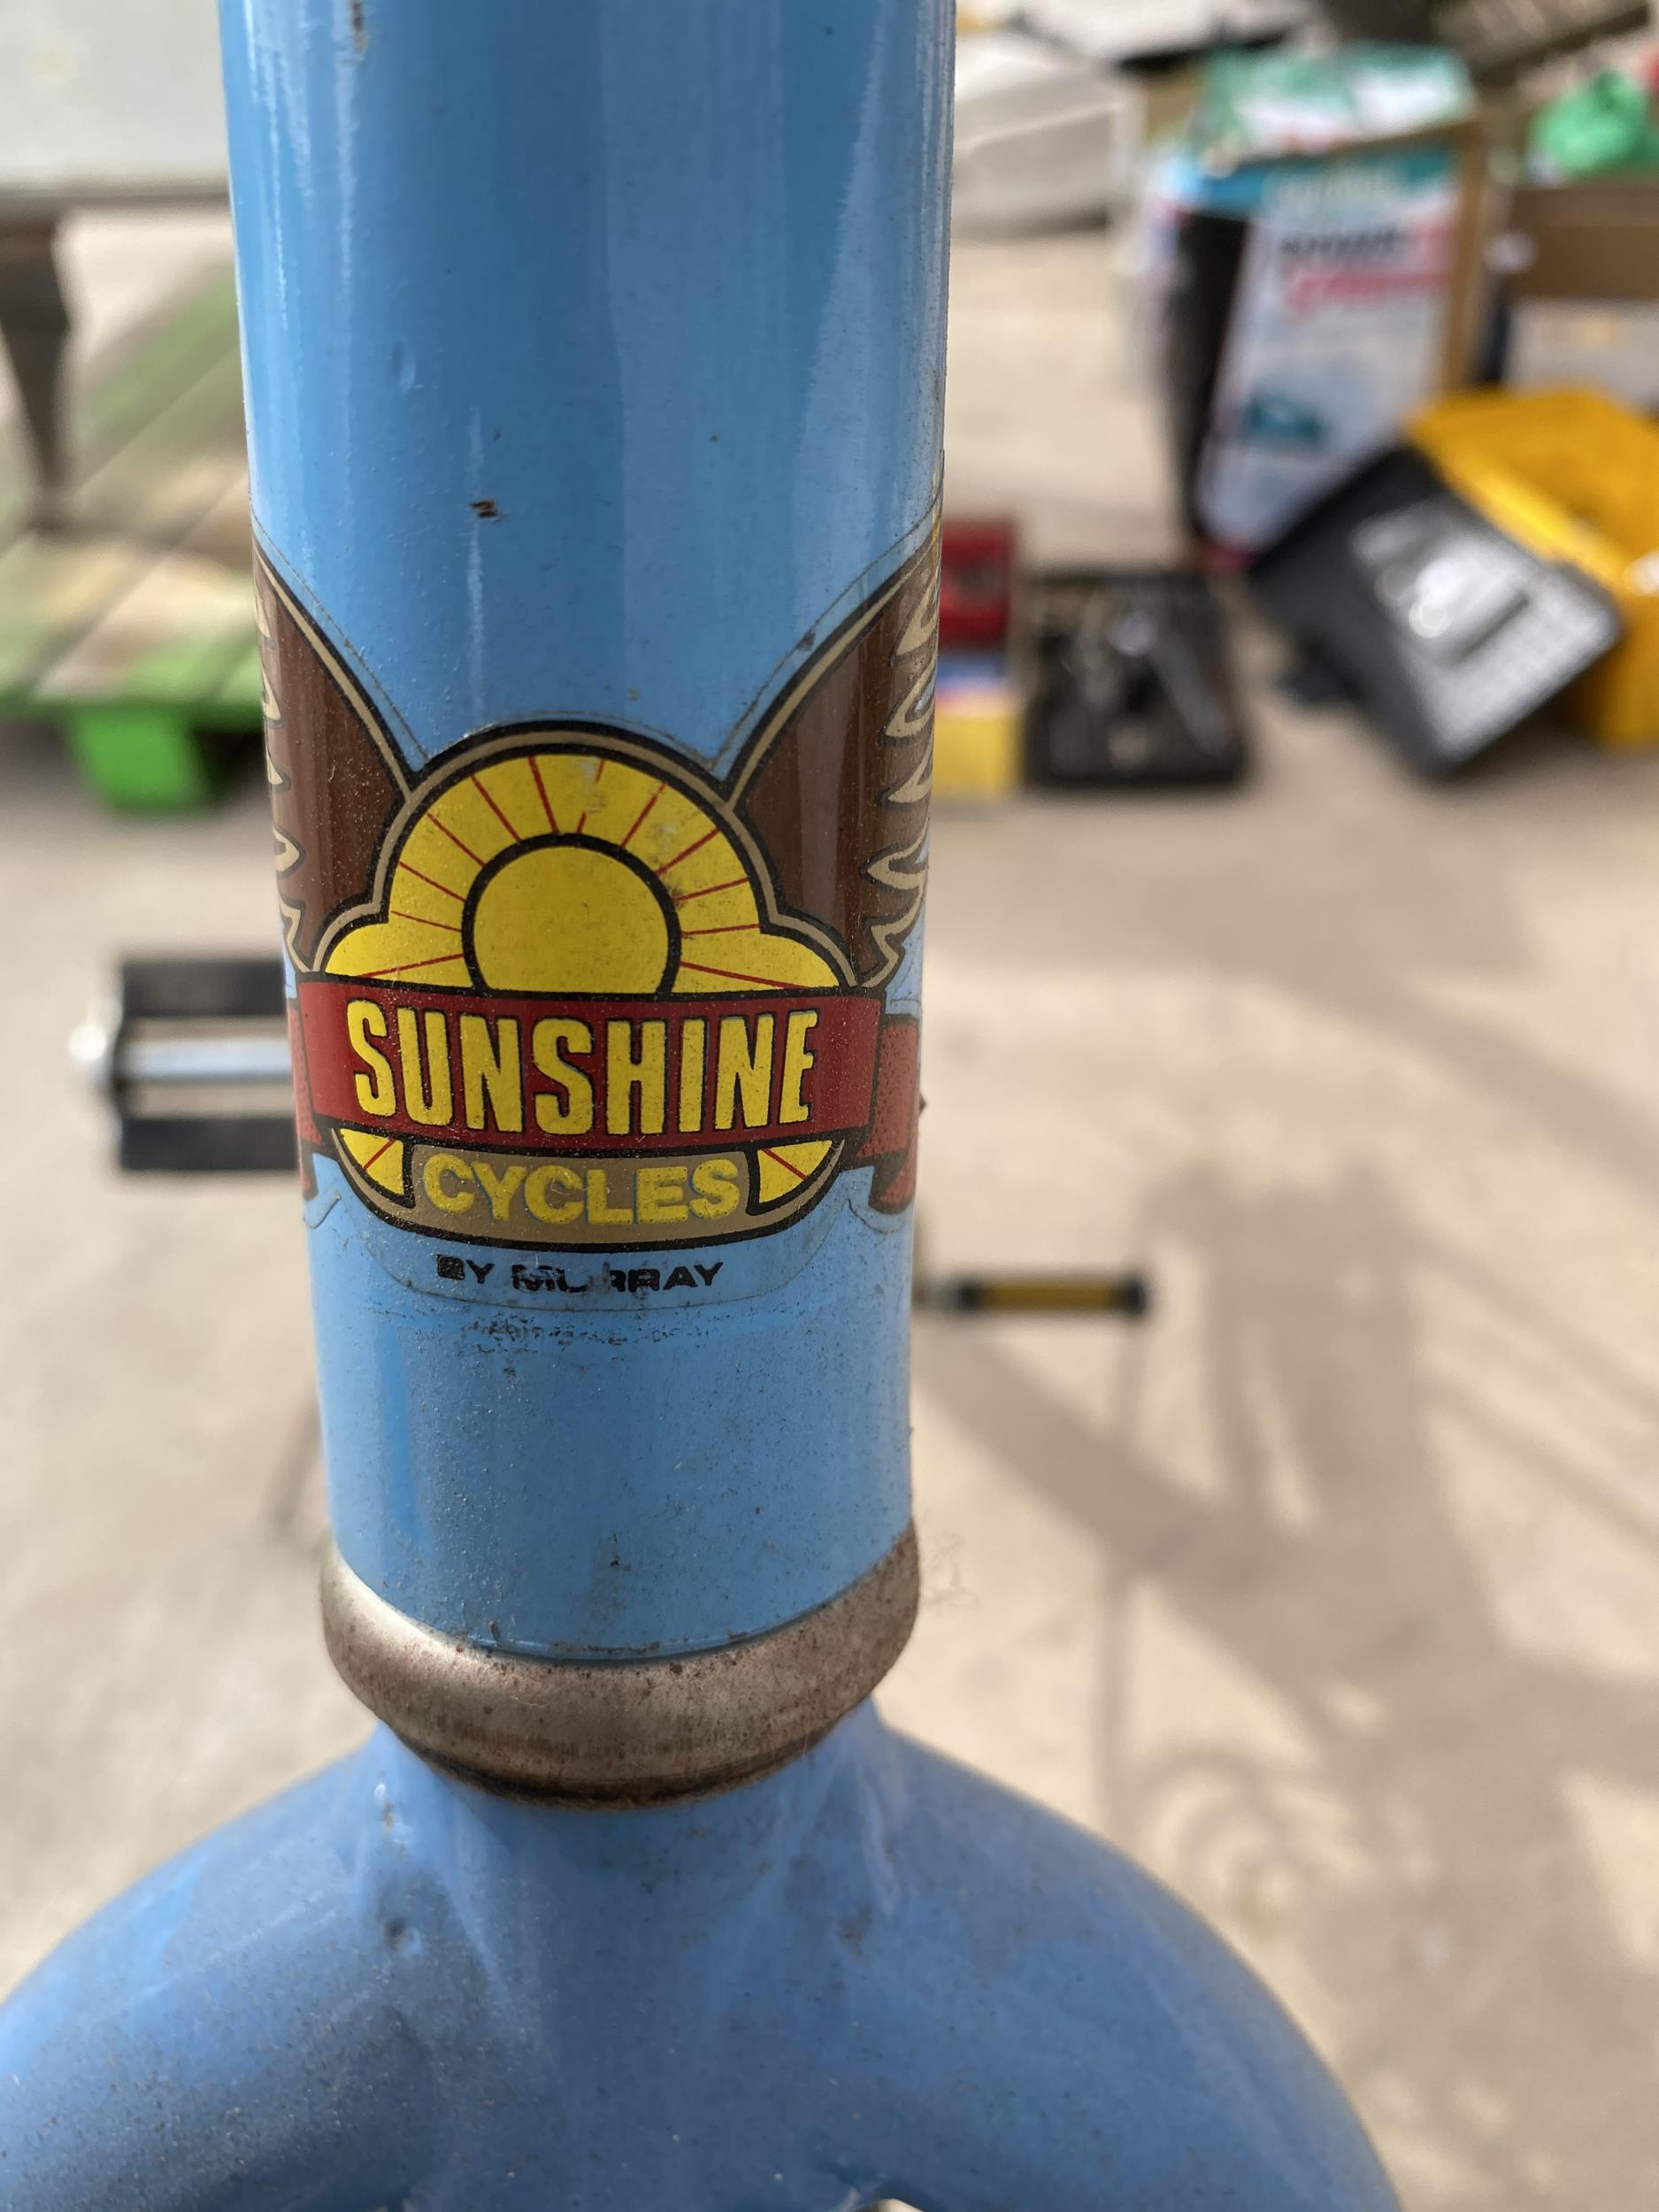 A VINTAGE MURRAY BICYCLE WITH THE SERIAL NUMBER M025022 39 - Image 2 of 5